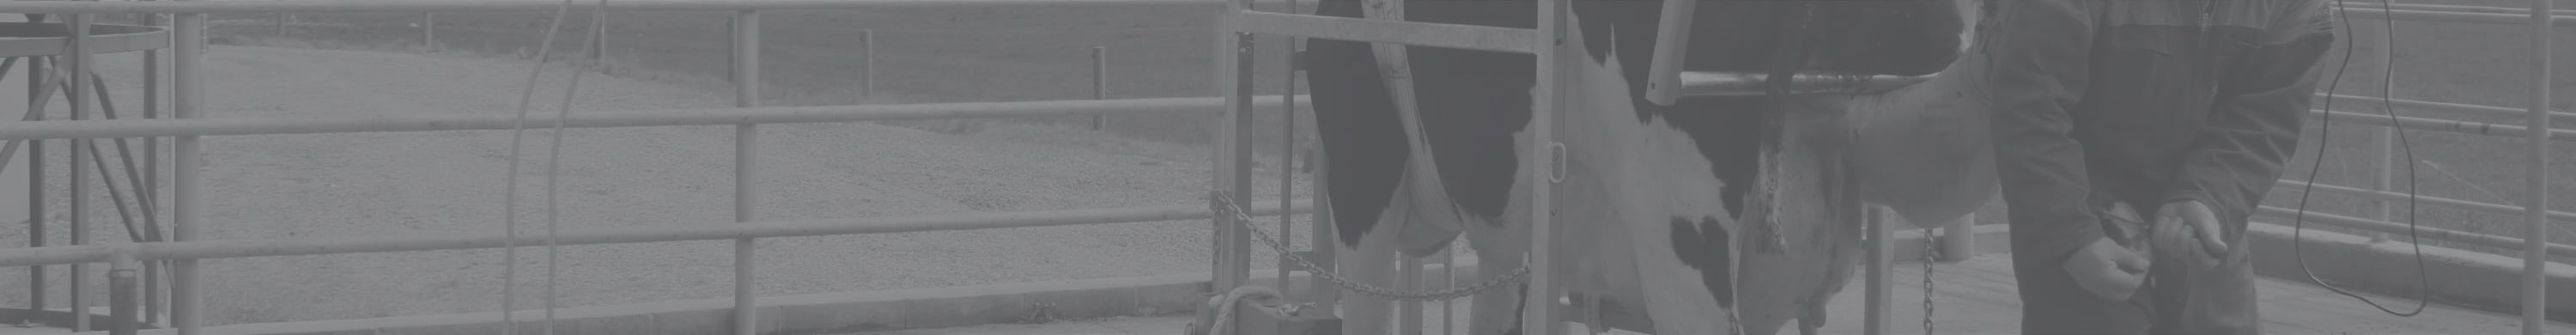 veehof-dairy-services-footer-slider-contact-trimming